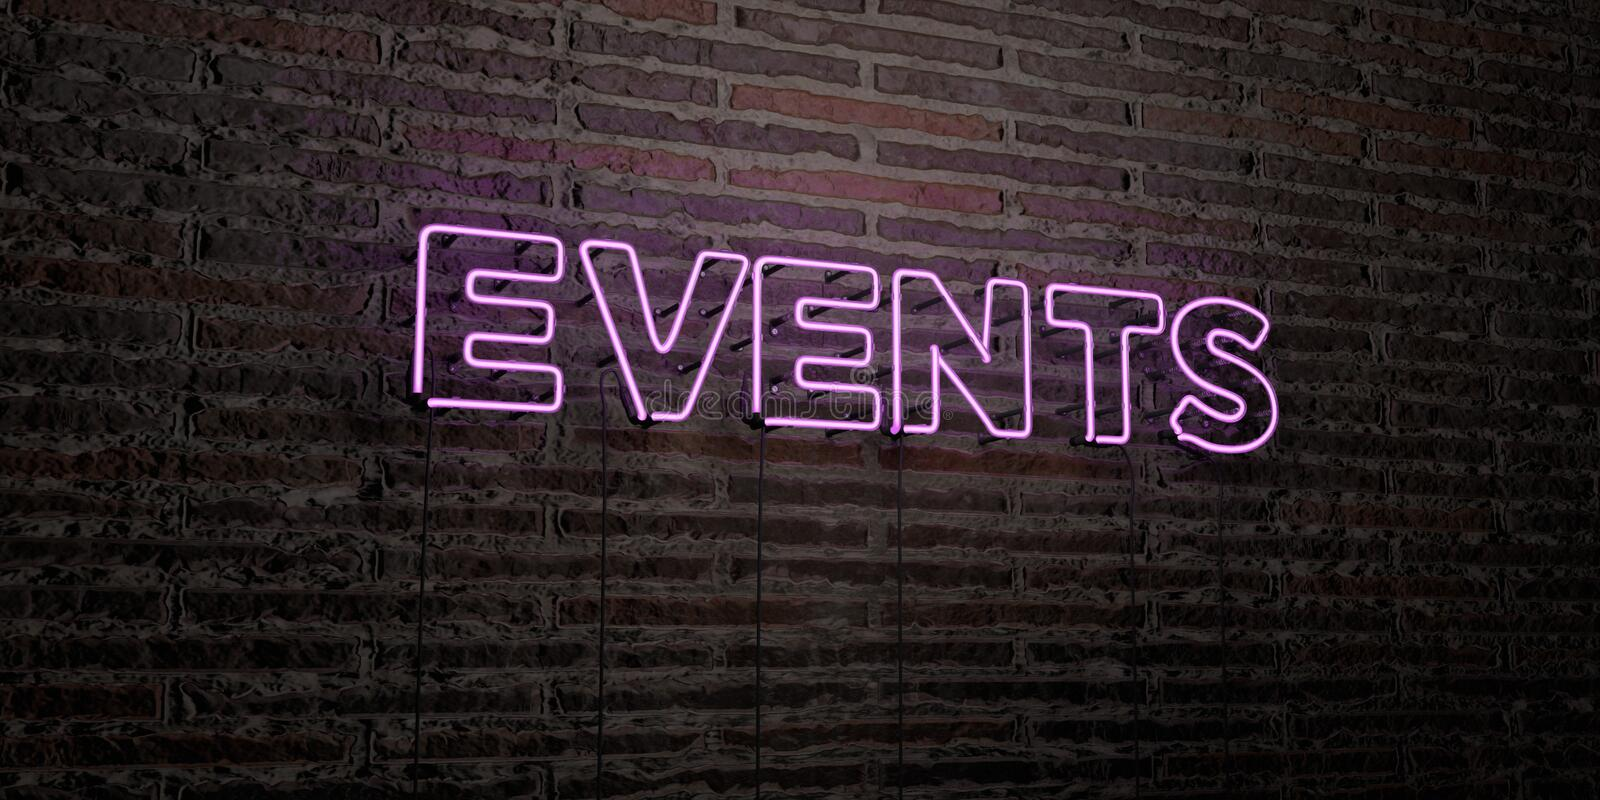 EVENTS -Realistic Neon Sign on Brick Wall background - 3D rendered royalty free stock image stock illustration